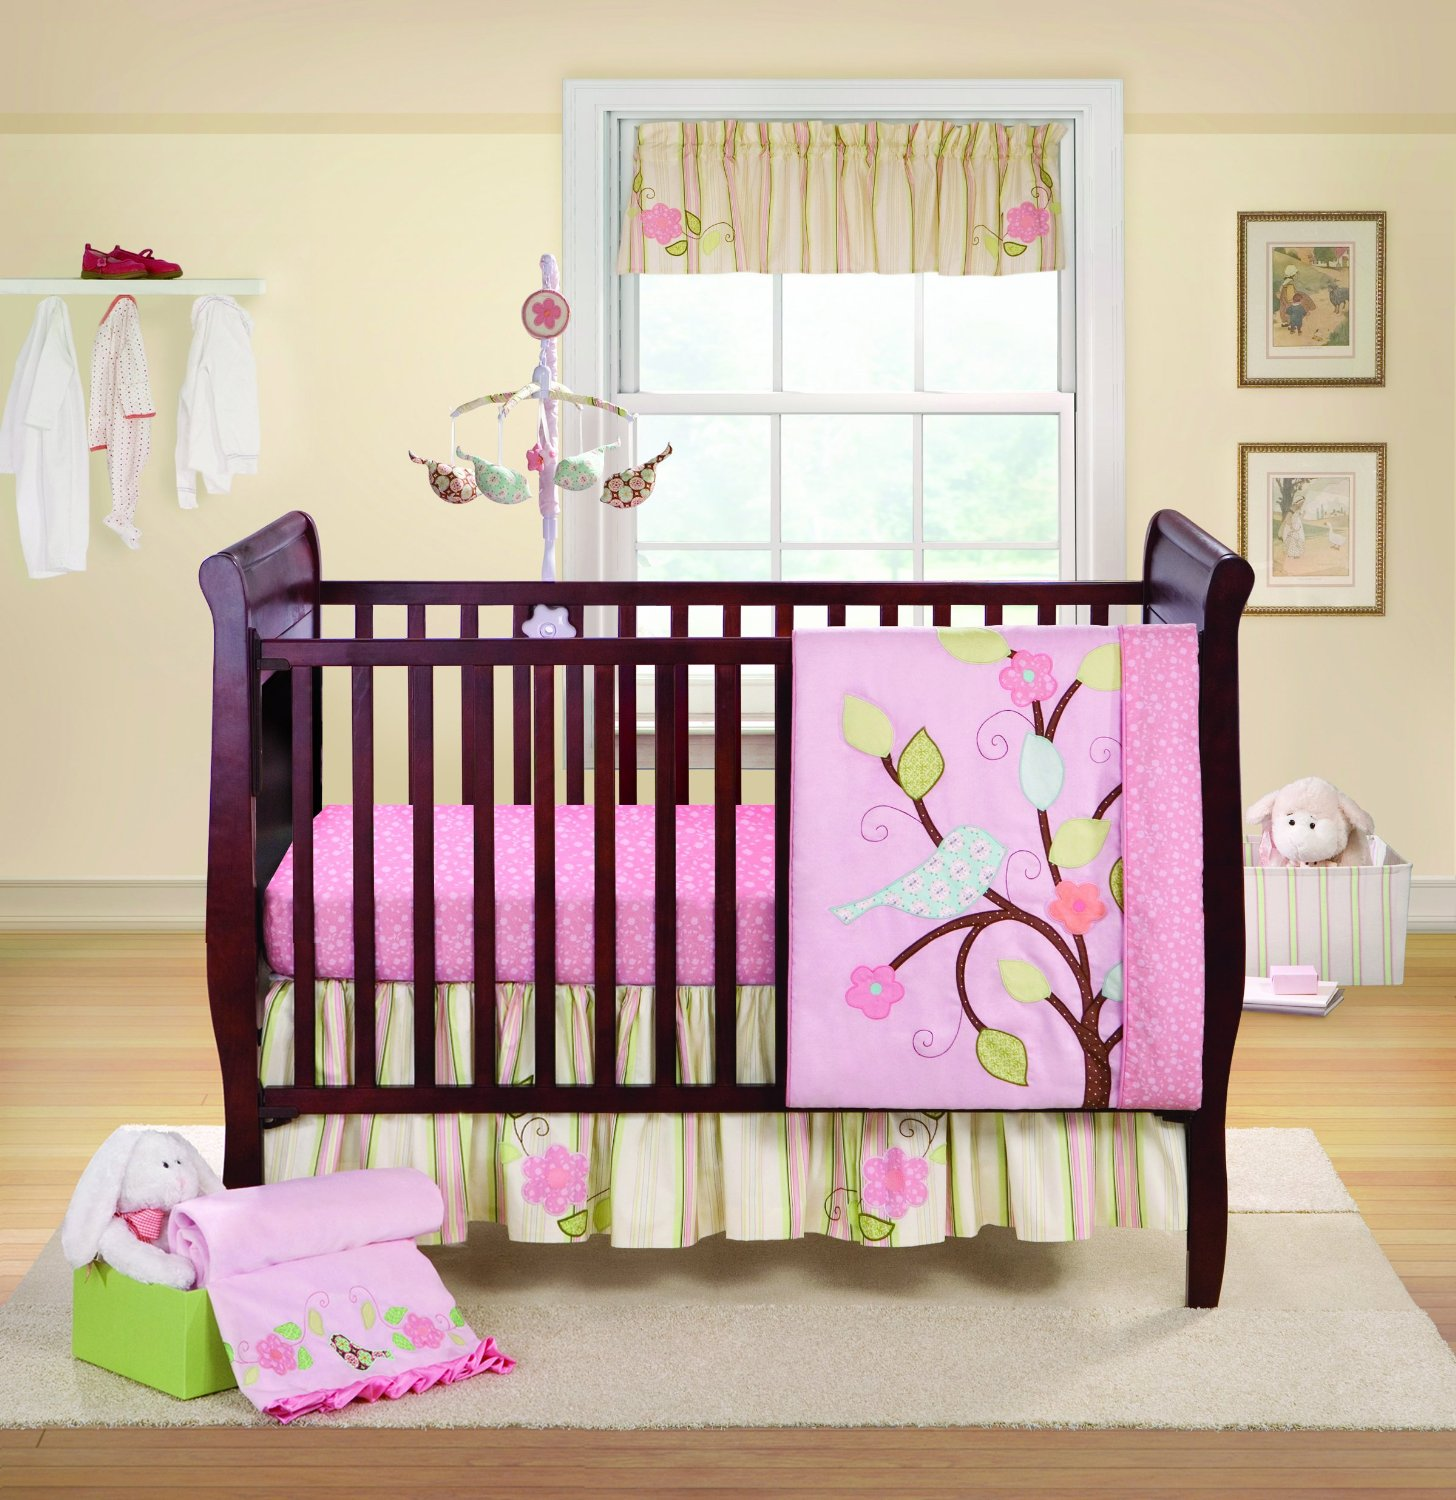 Bananafish love bird crib bedding and decor baby bedding Baby girl bedding